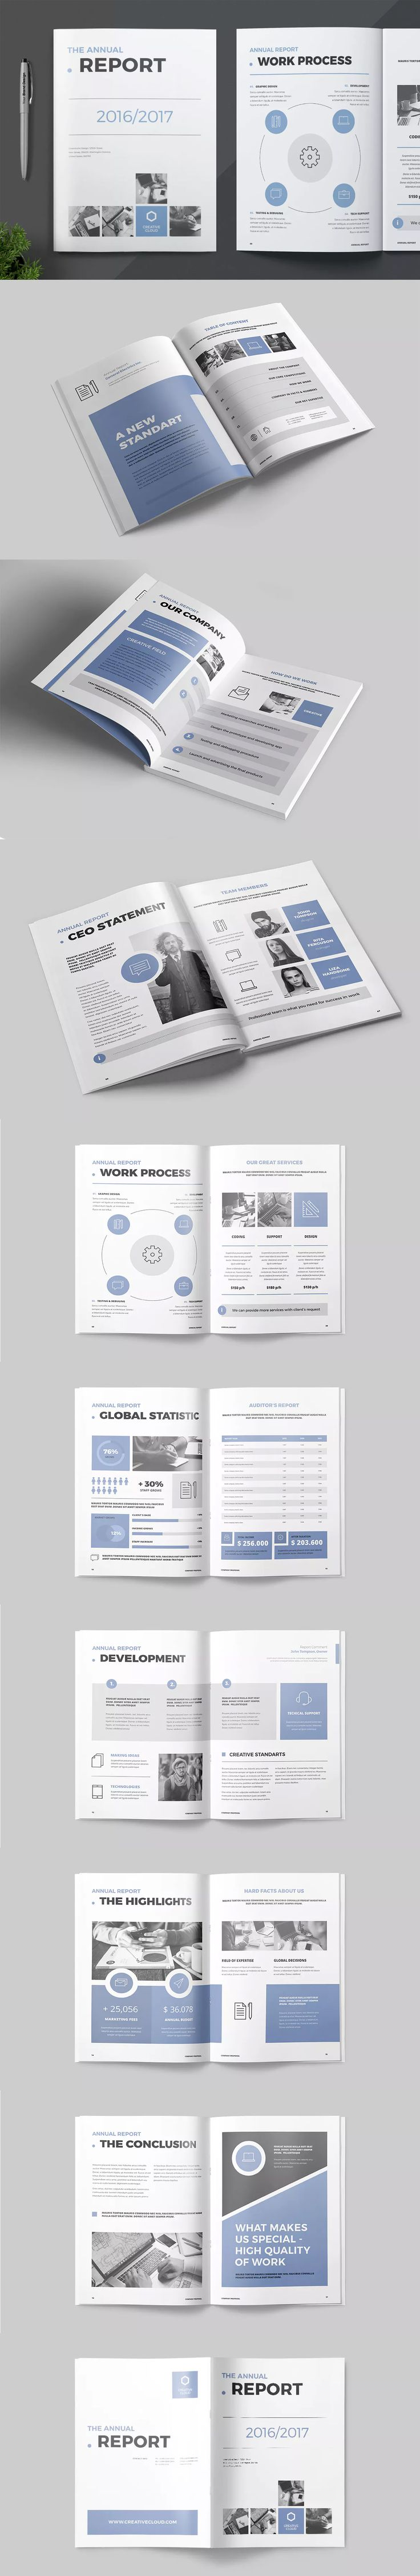 21 best annual report design images on pinterest annual reports